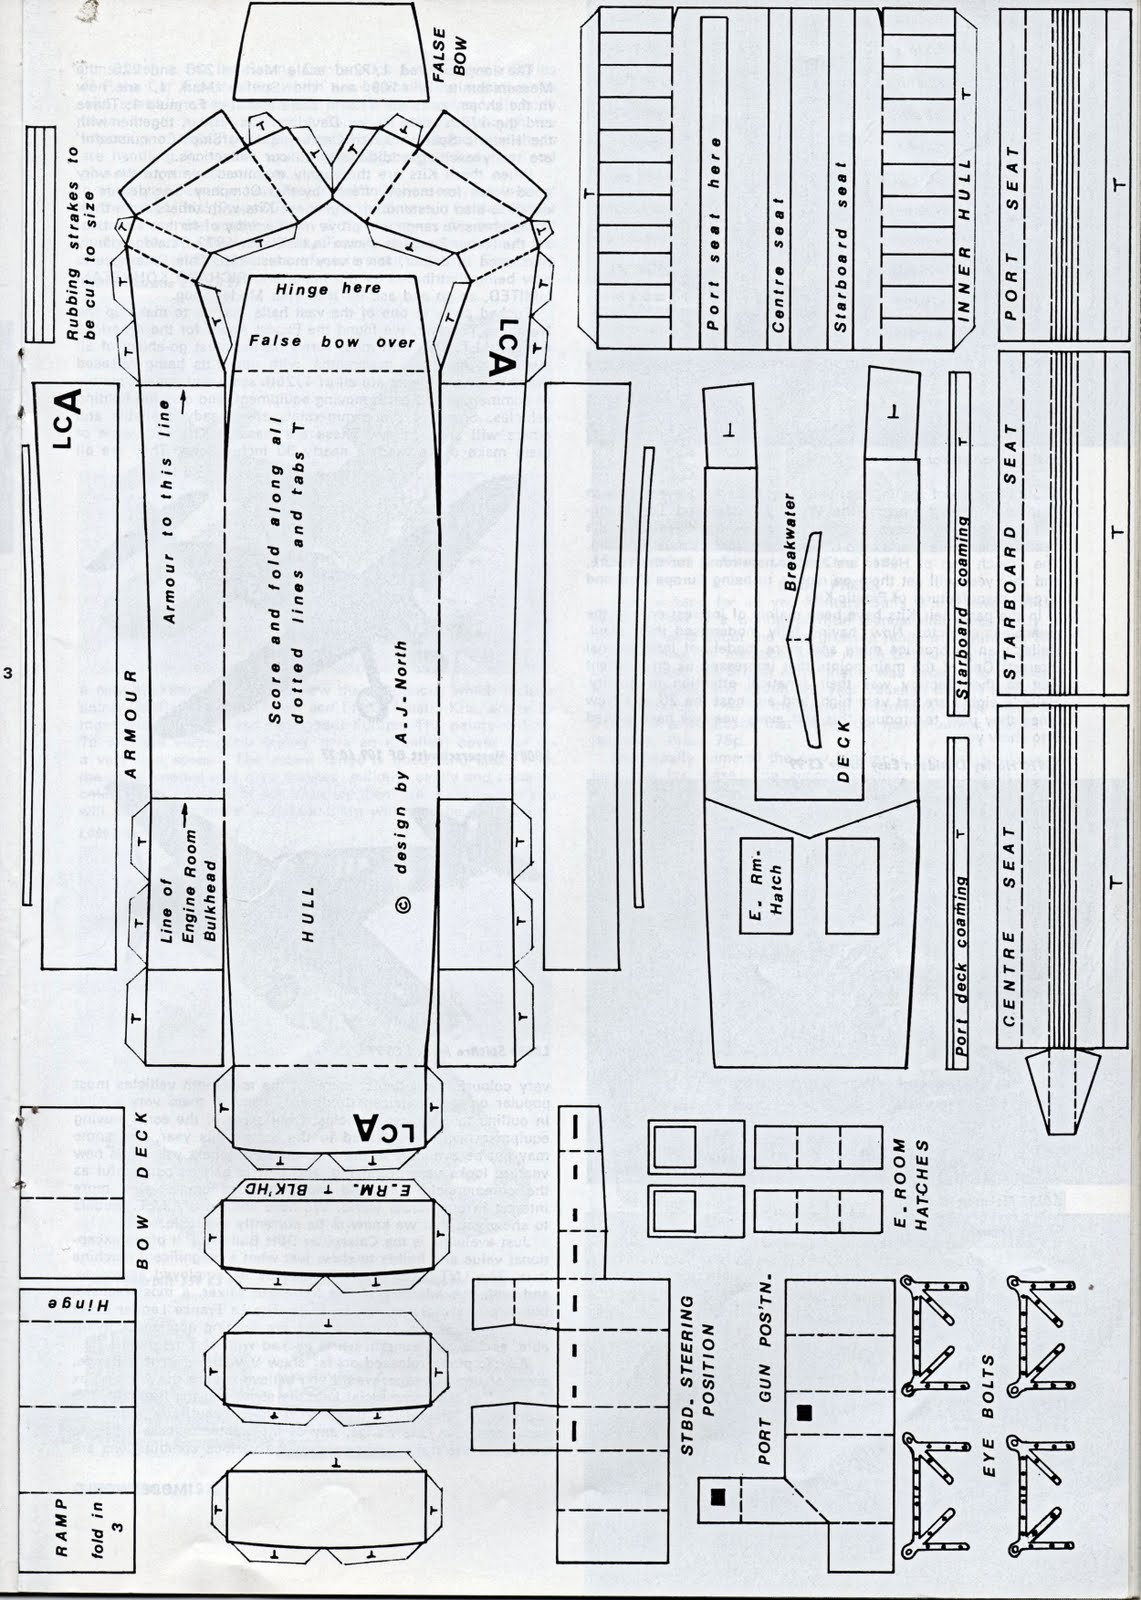 Vintage Wargaming Make Your Own Lca By Arthur North